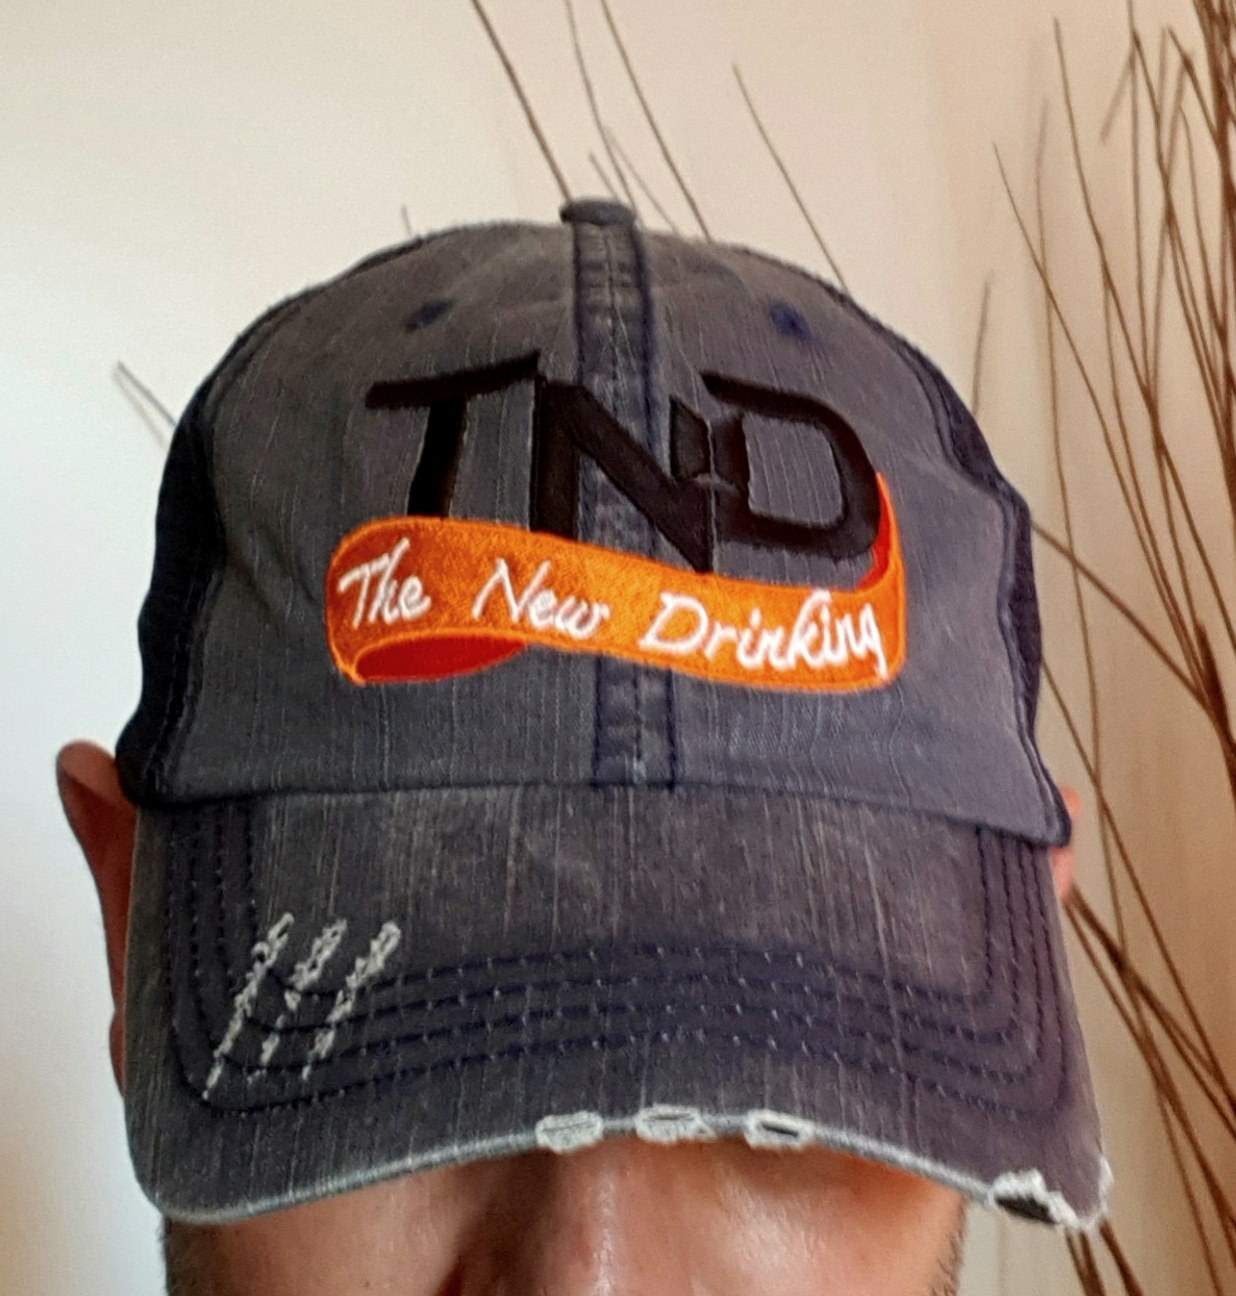 the new drinking cap